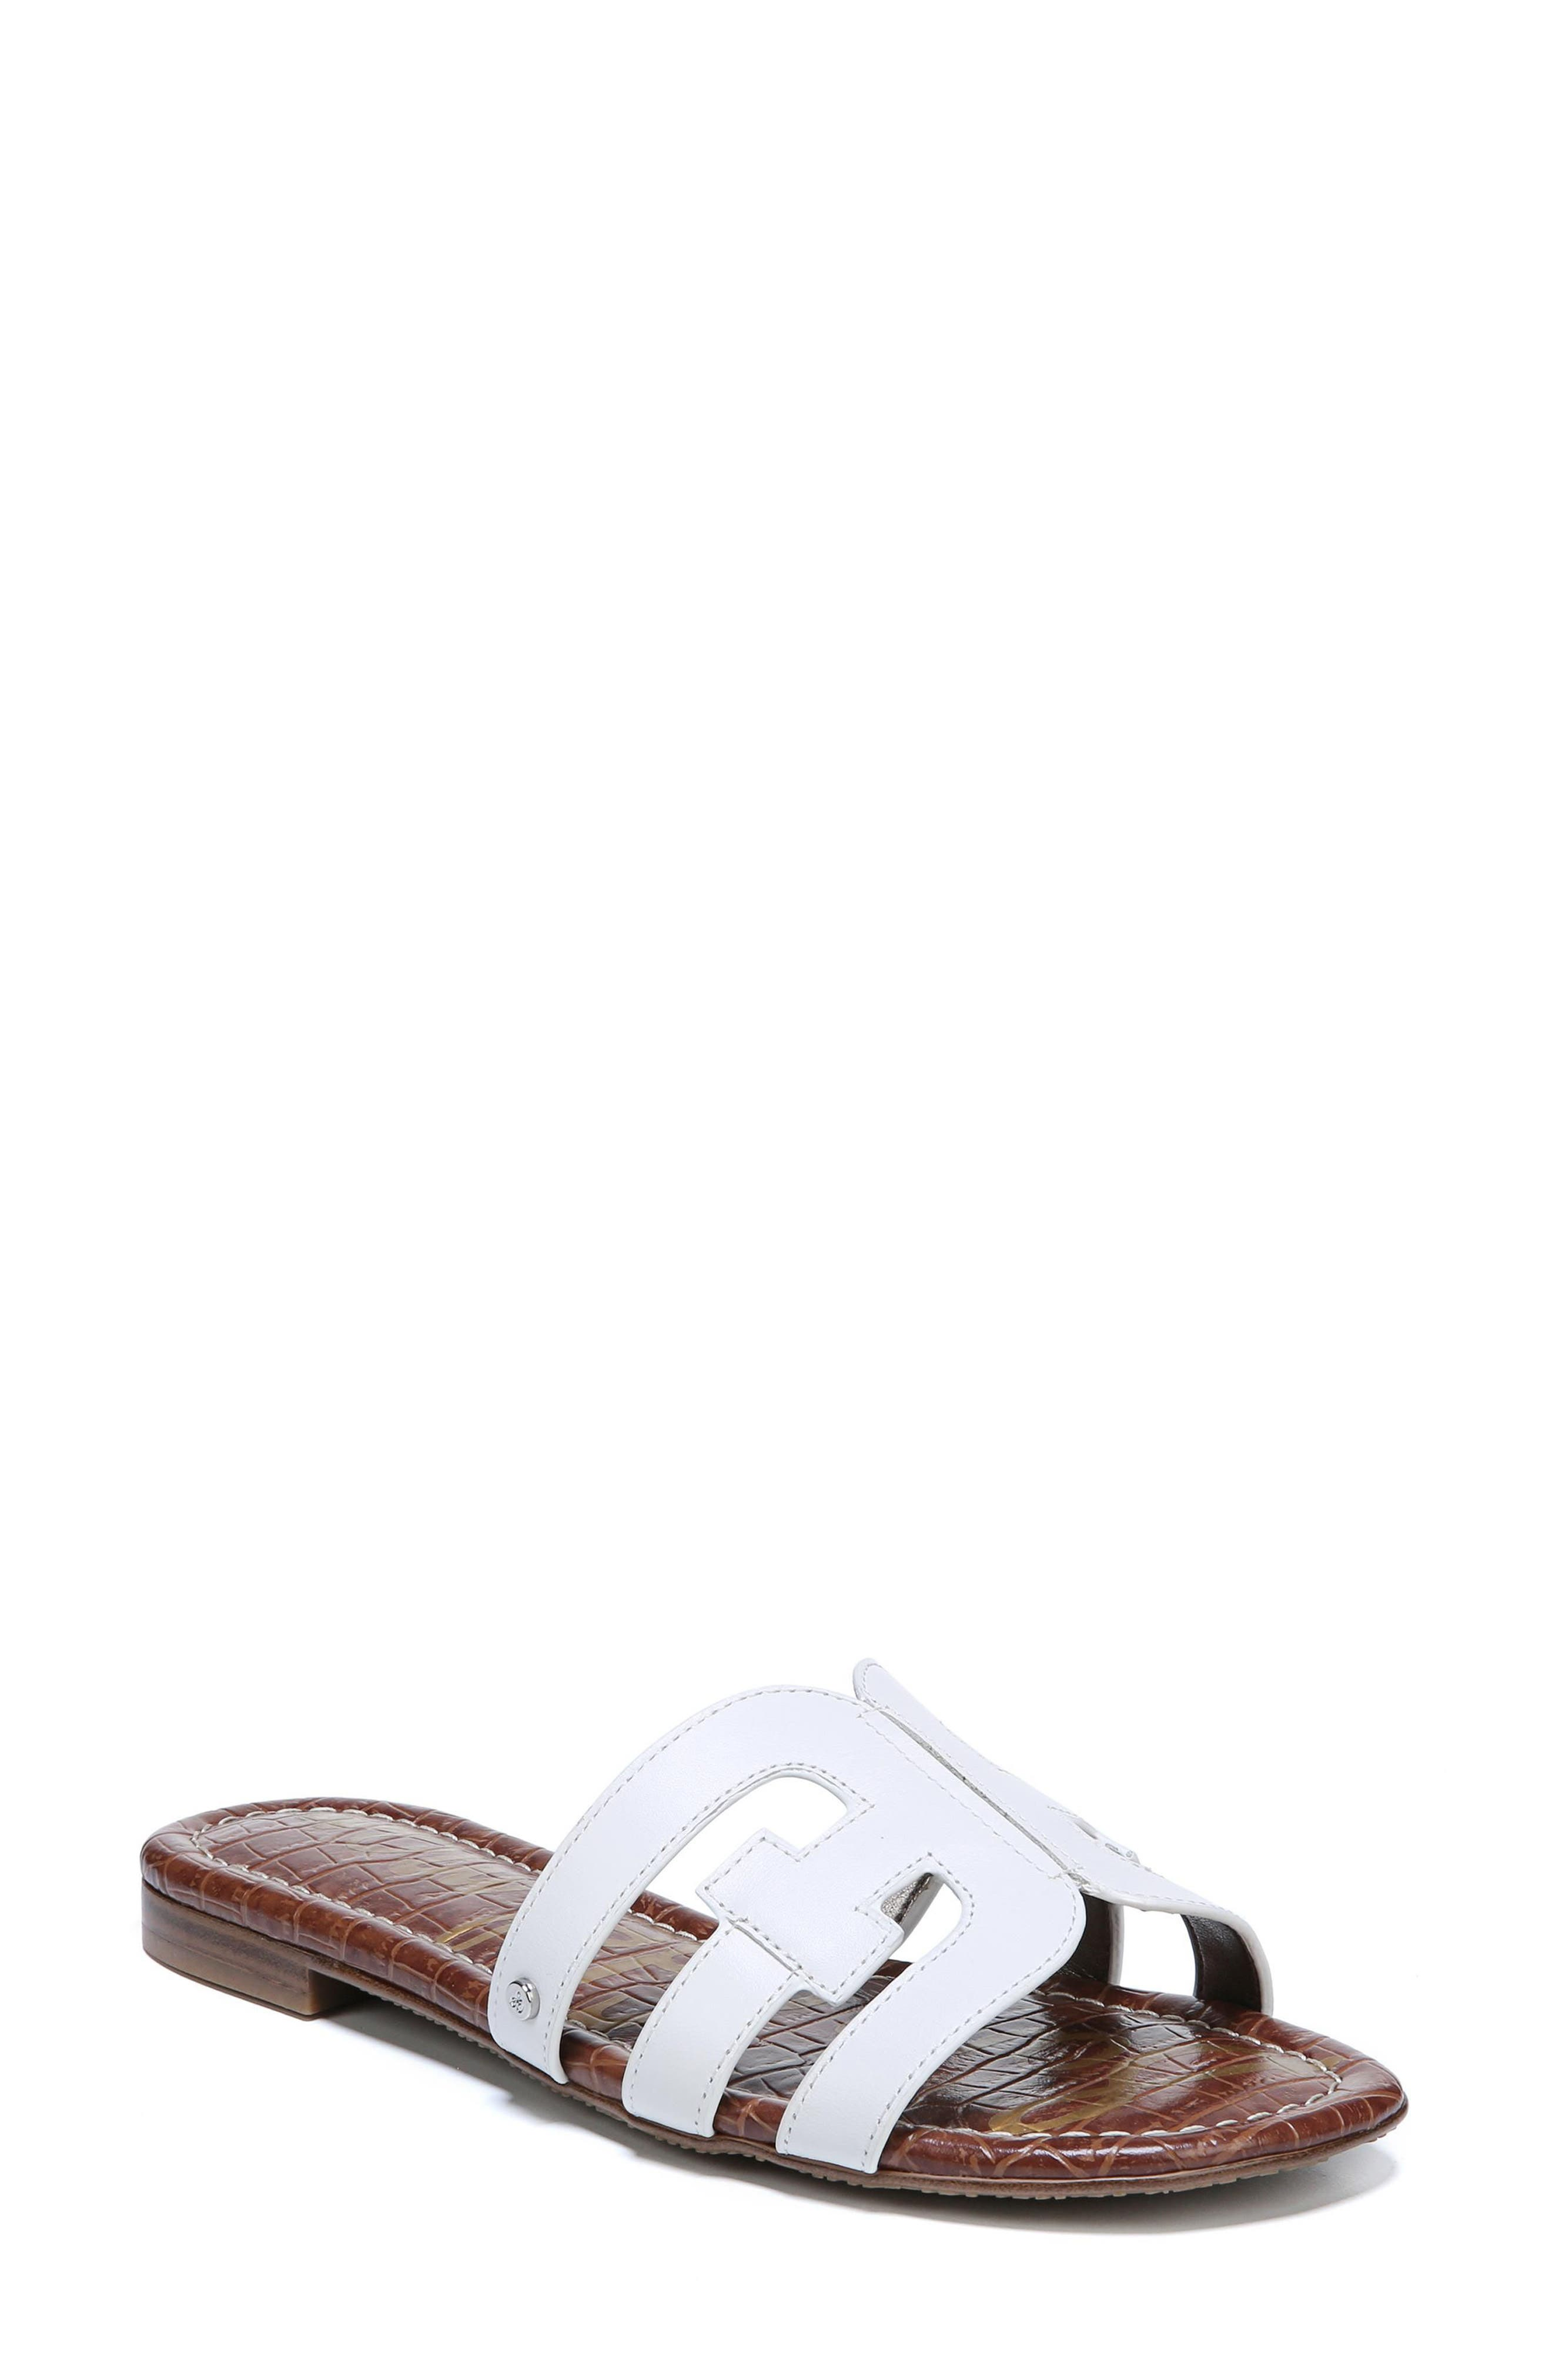 Women'S Bay Leather Slide Sandals in White from 6PM.COM